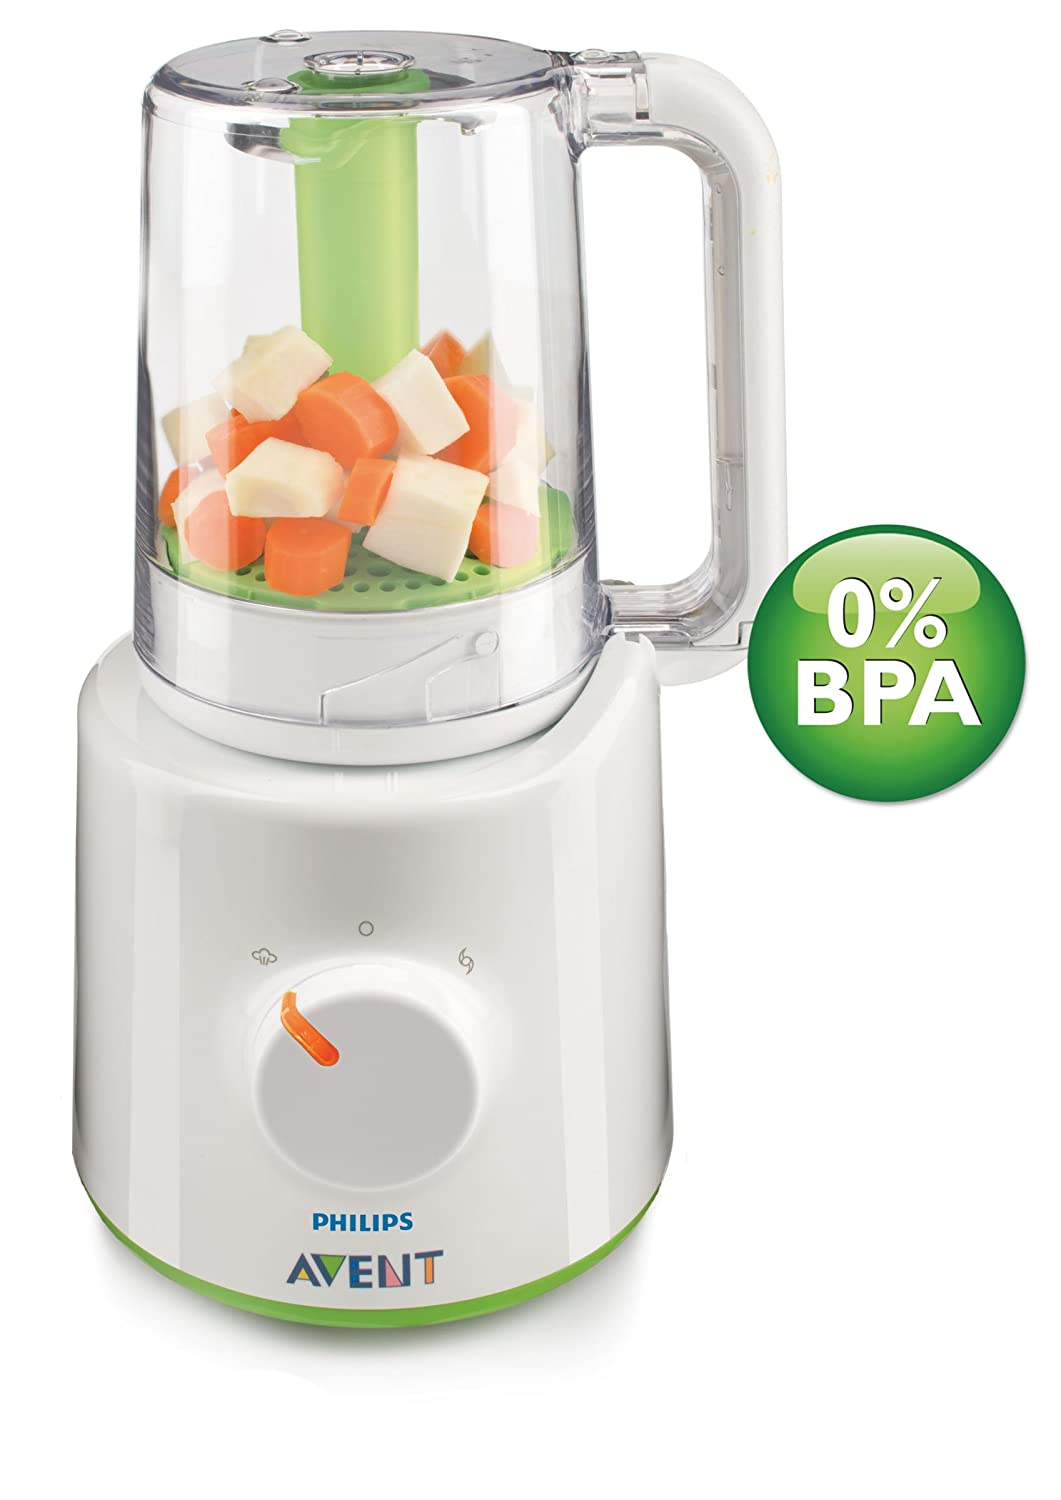 AVENT Easy Meal Blender 2 In 1 With Steam